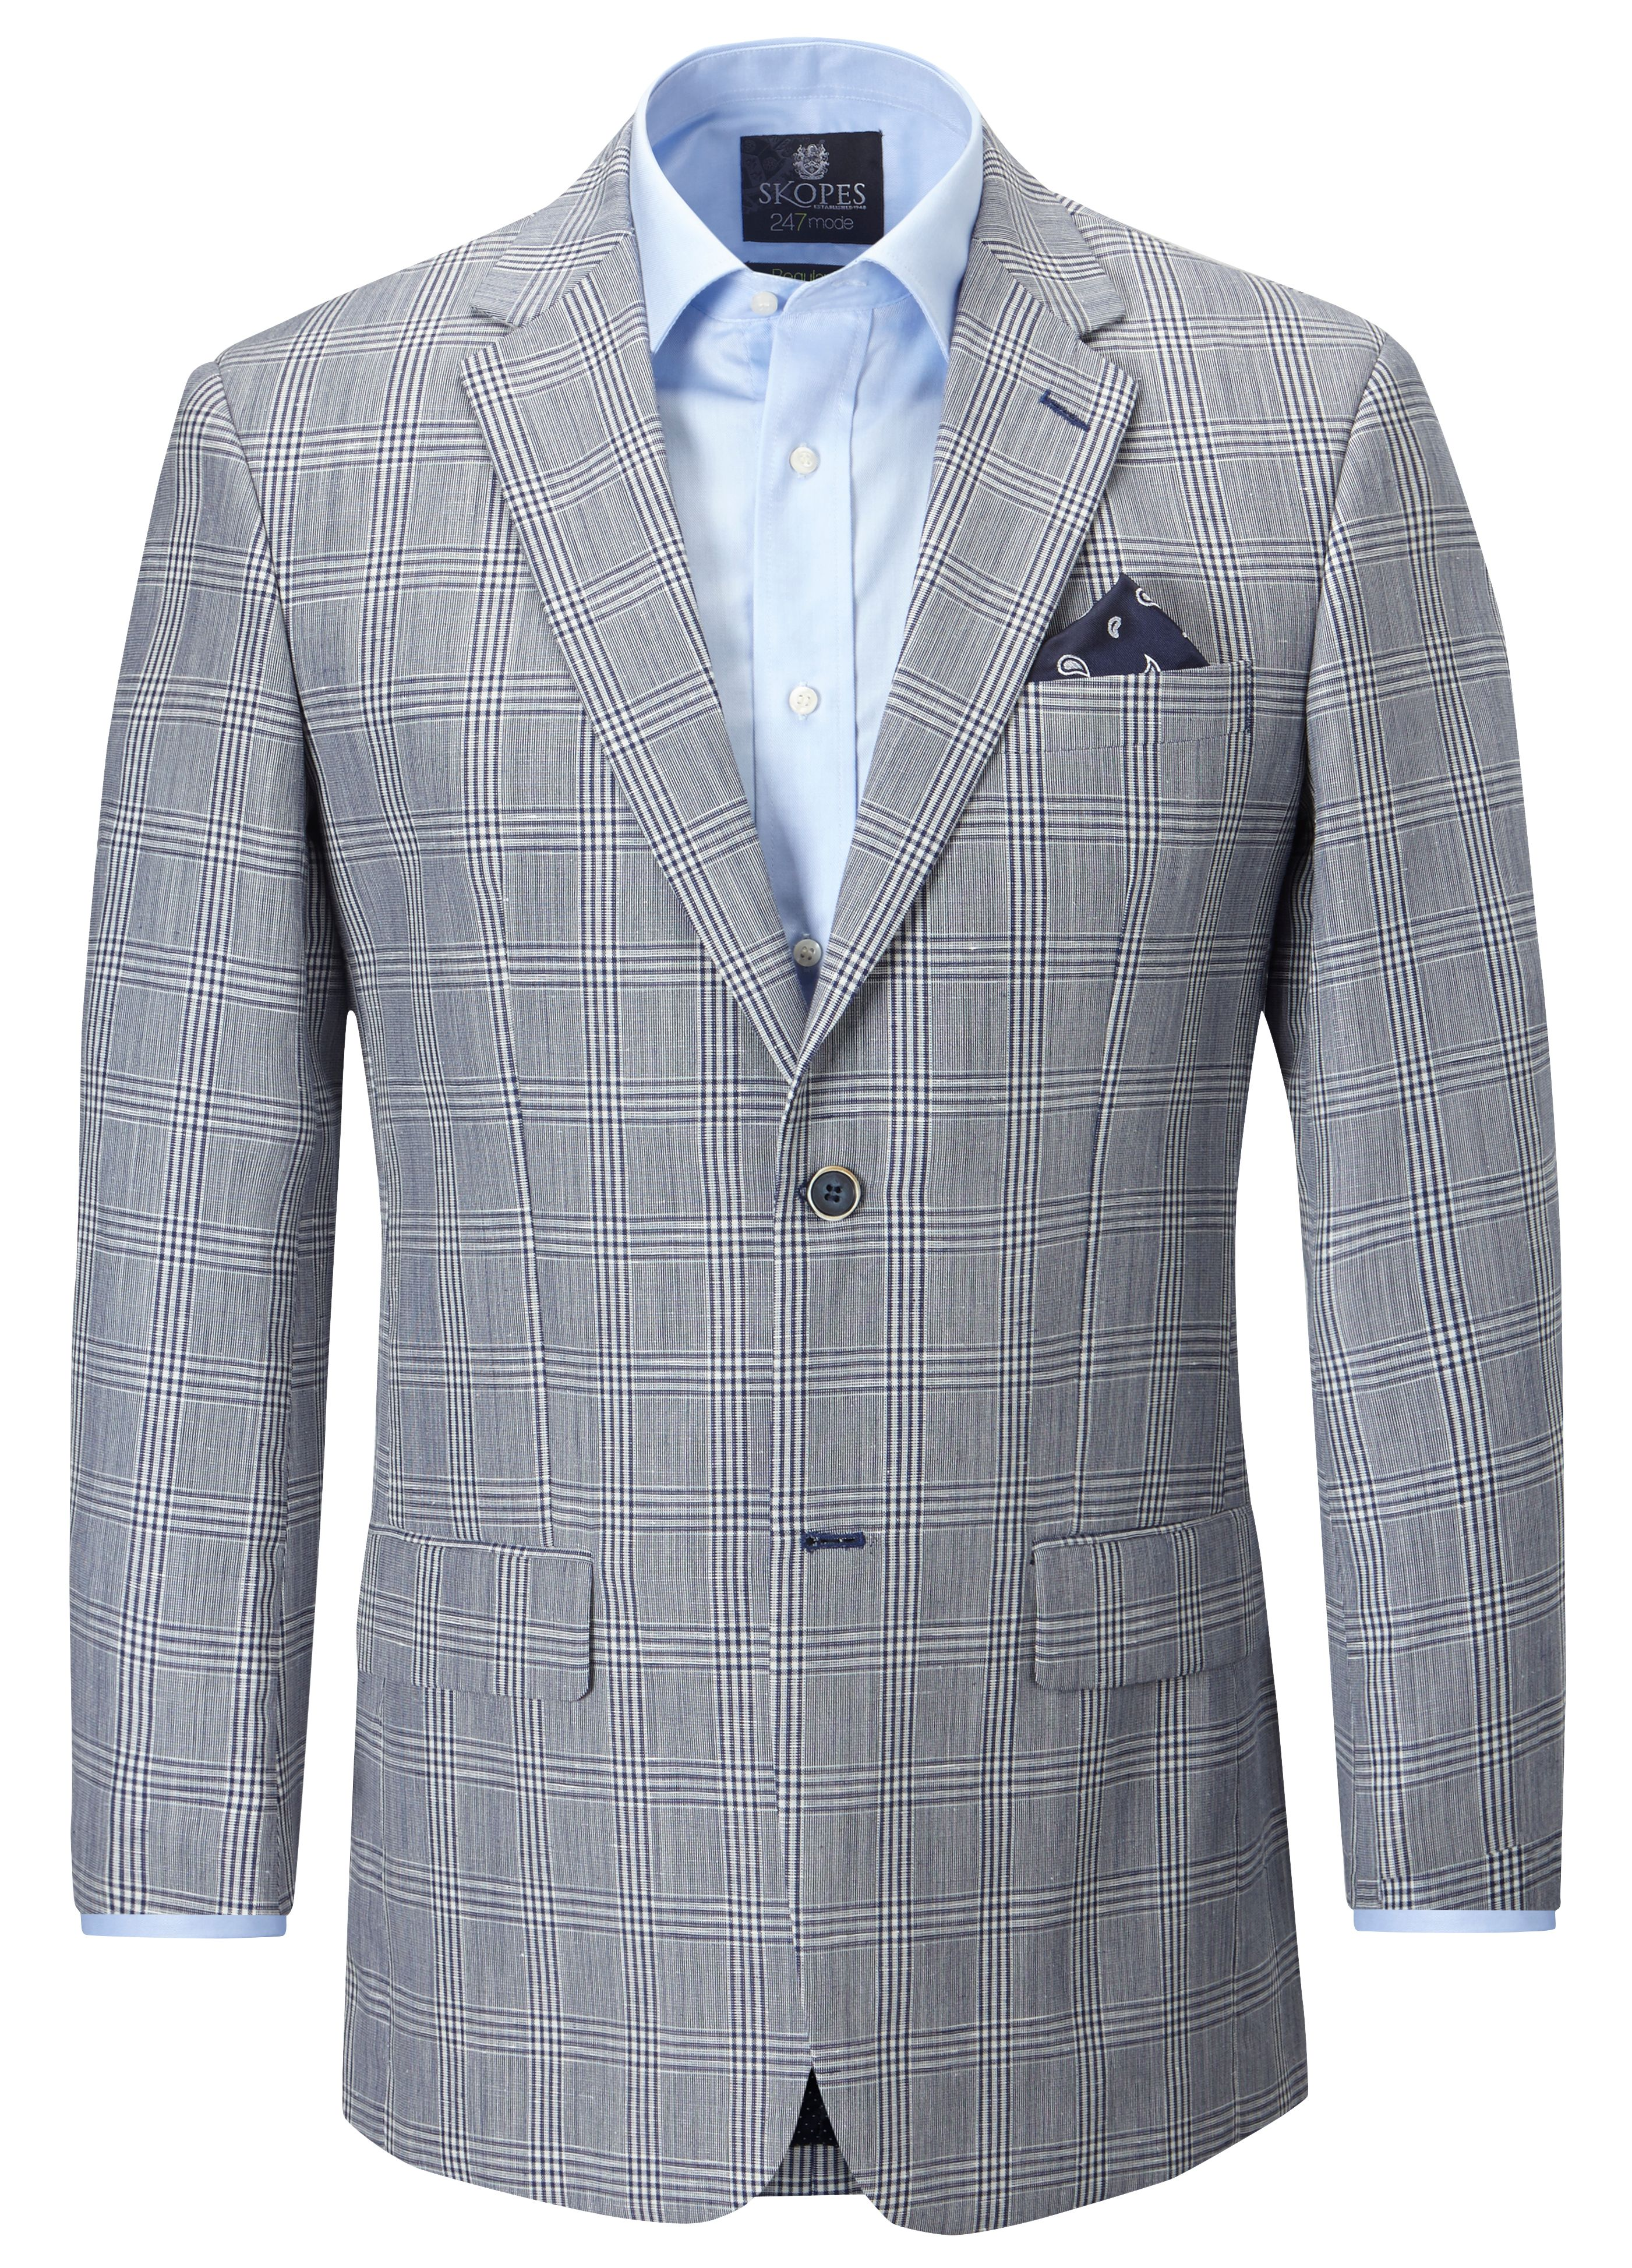 Lisbon tailored single breasted formal blazer